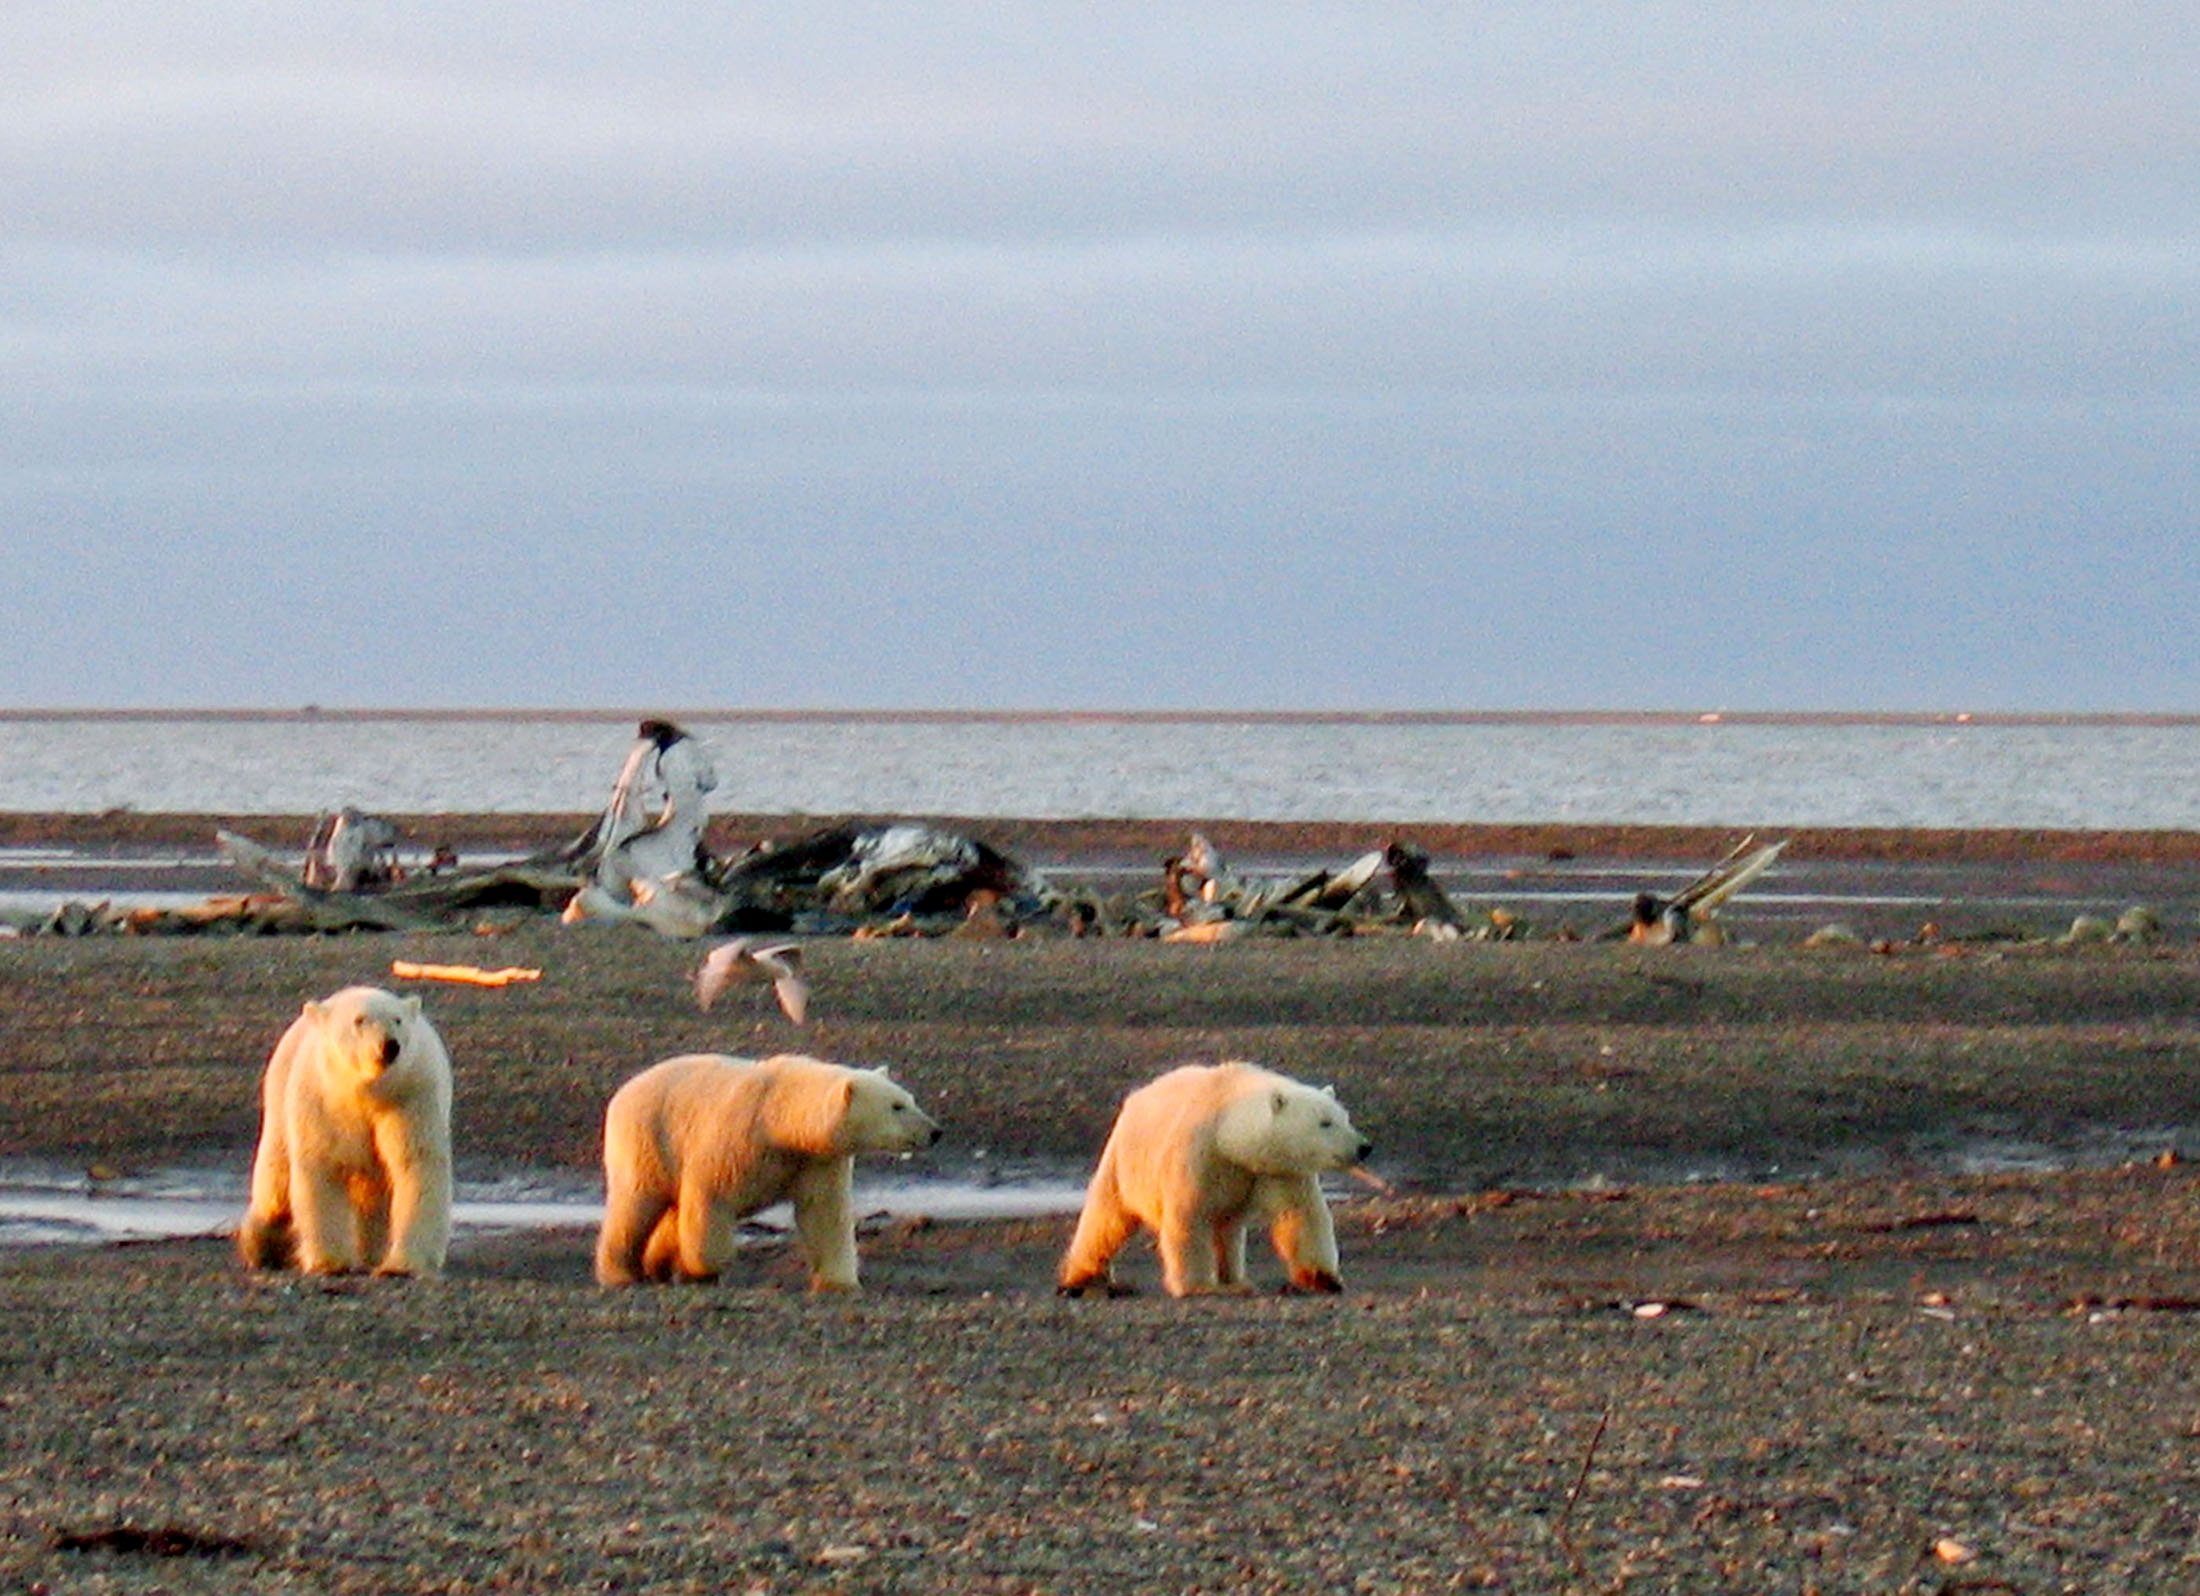 Three polar bears are seen on the Beaufort Sea coast within the 1002 Area of the Arctic National Wildlife Refuge in this undated handout photo provided by the U.S. Fish and Wildlife Service Alaska Image Library on December 21, 2005.  Fish and Wildlife Service Alaska Image Library/File Photo/File Photo